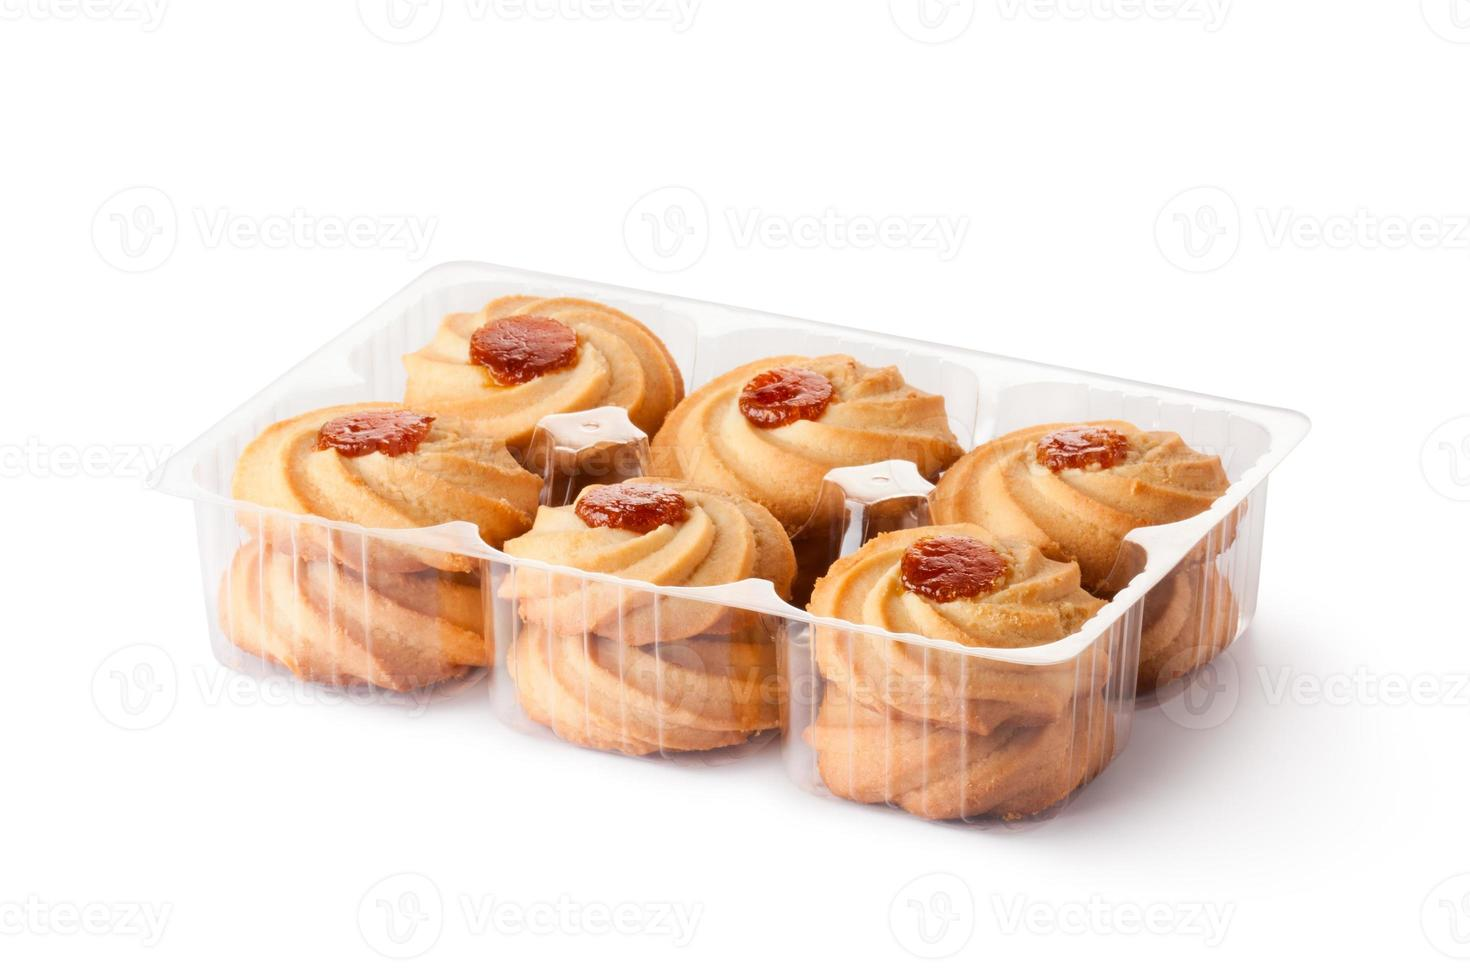 Biscuits with jam toppings in retail package photo